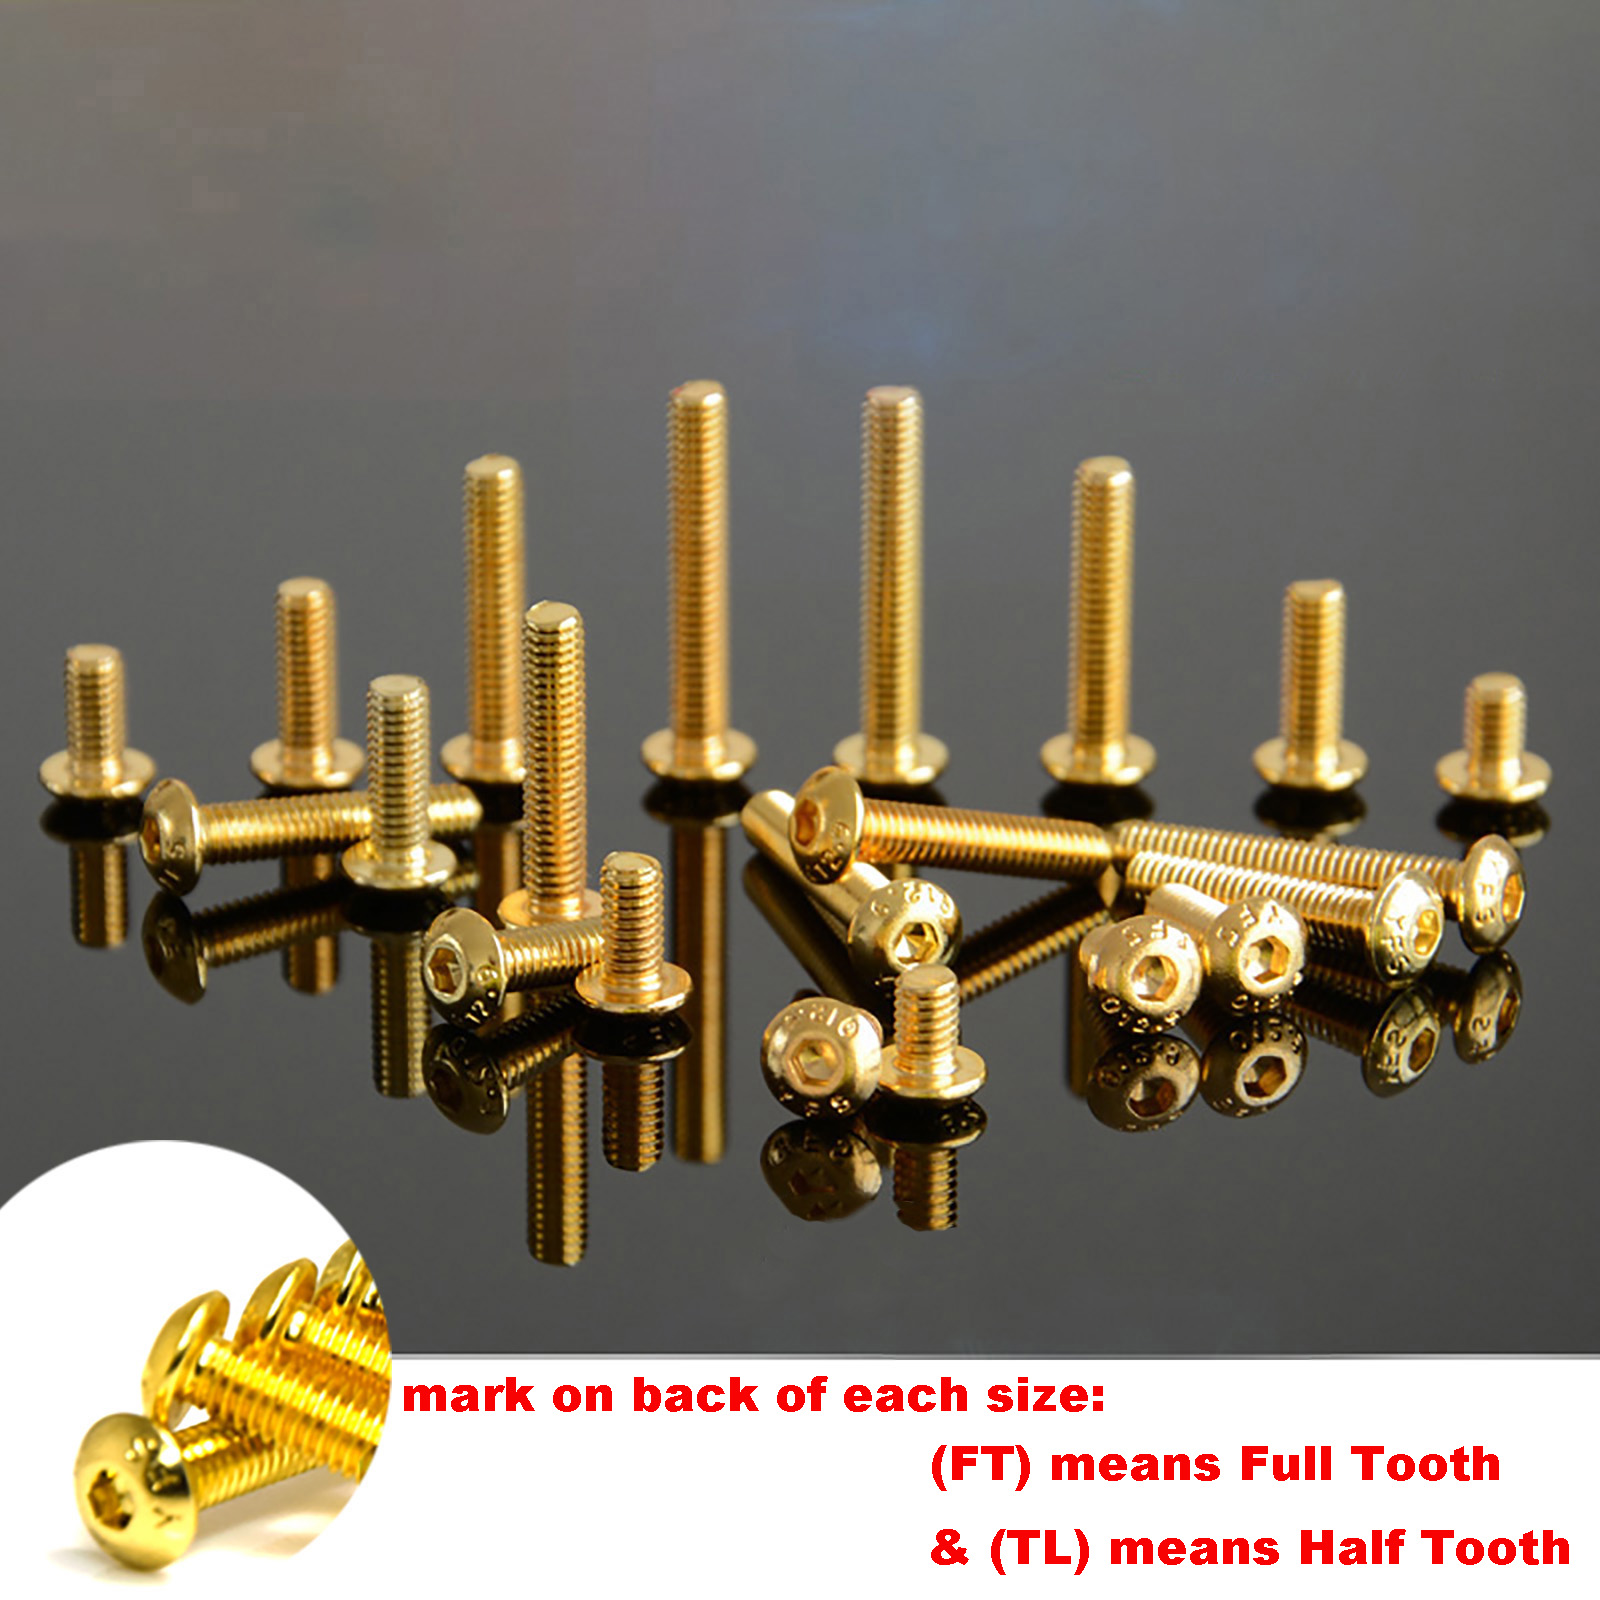 10Pcs Grade 12.9 Half Round Head Plating Titanium Gold Hex Screw <font><b>M2</b></font> <font><b>M2</b></font>.5 M3 M4 M5 ISO7380 Hex Socket Screw Length 5-<font><b>30mm</b></font> image